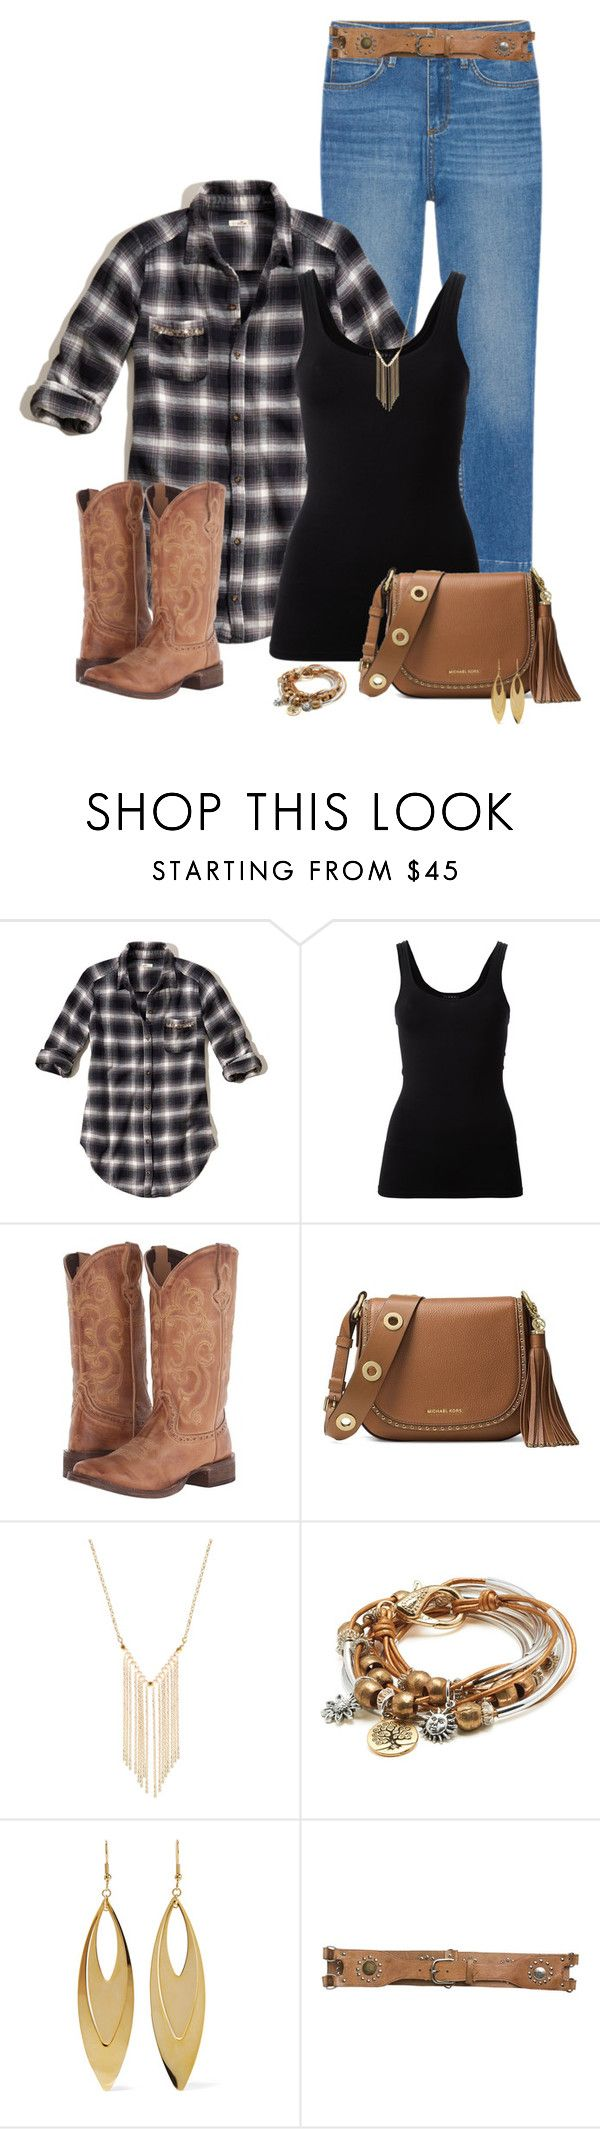 """Casual Western"" by mandeerose ❤ liked on Polyvore featuring Hollister Co., Theory, Roper, MICHAEL Michael Kors, Gemelli, Lizzy James and Kenneth Jay Lane"